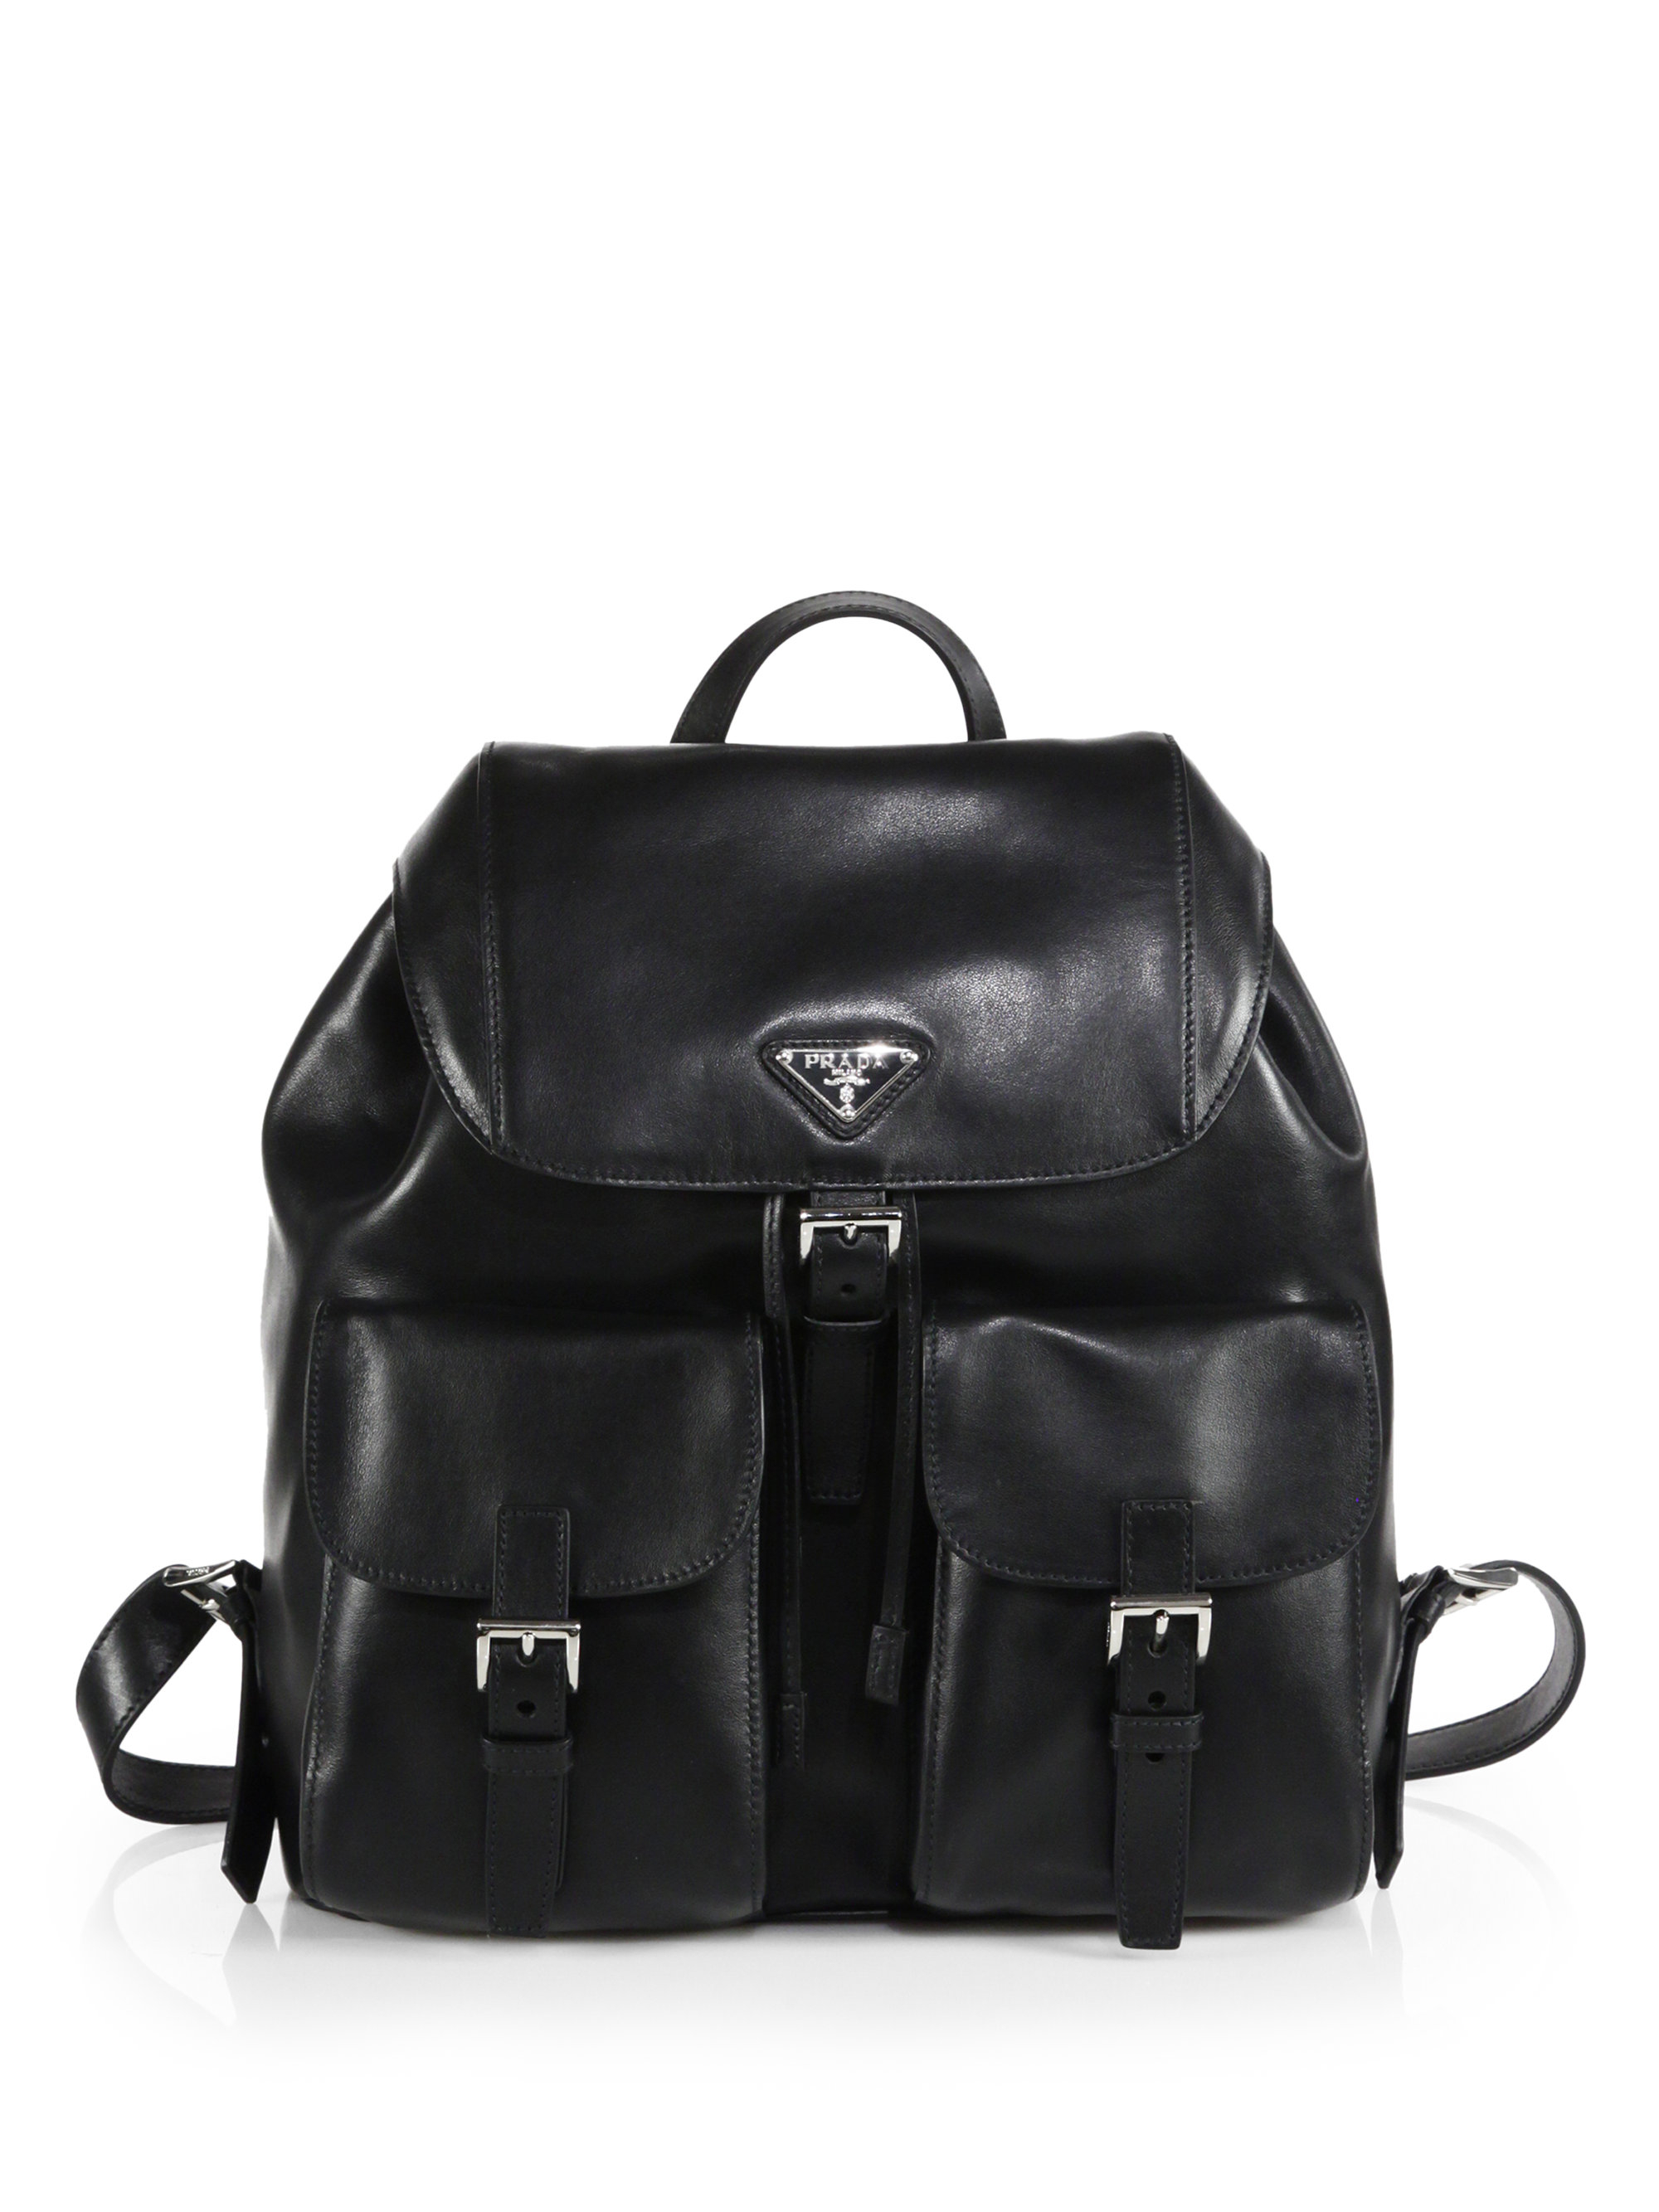 best replica prada sneakers - prada classic black backpack